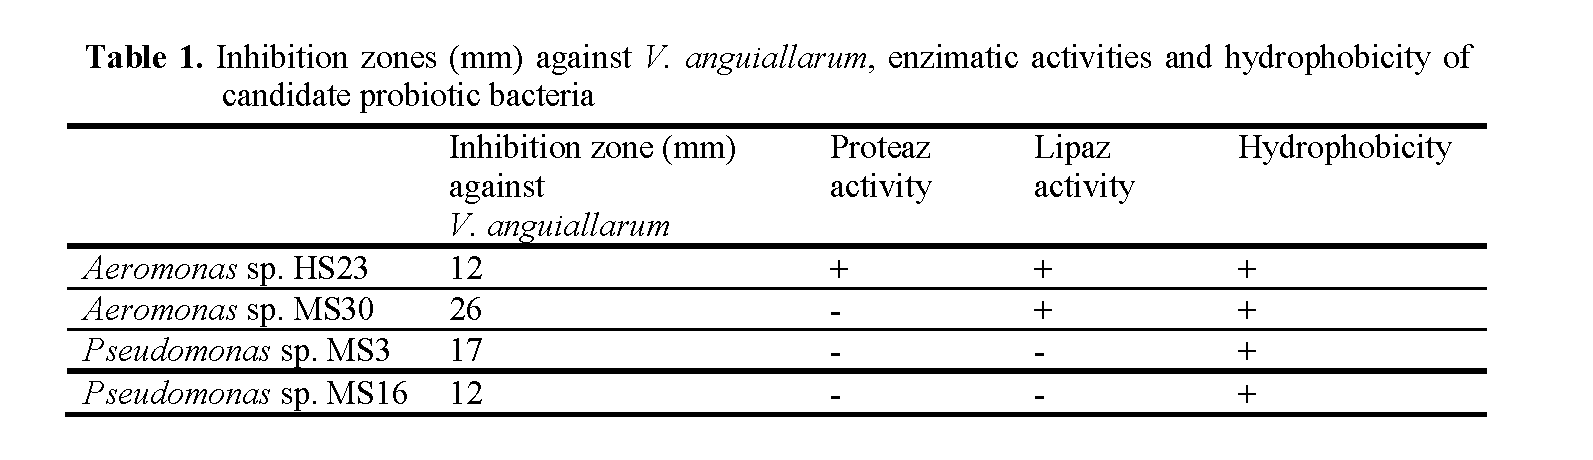 Fisheries-Sciences-Inhibition-zones-mm-against-V-anguiallarum-enzimatic-activities